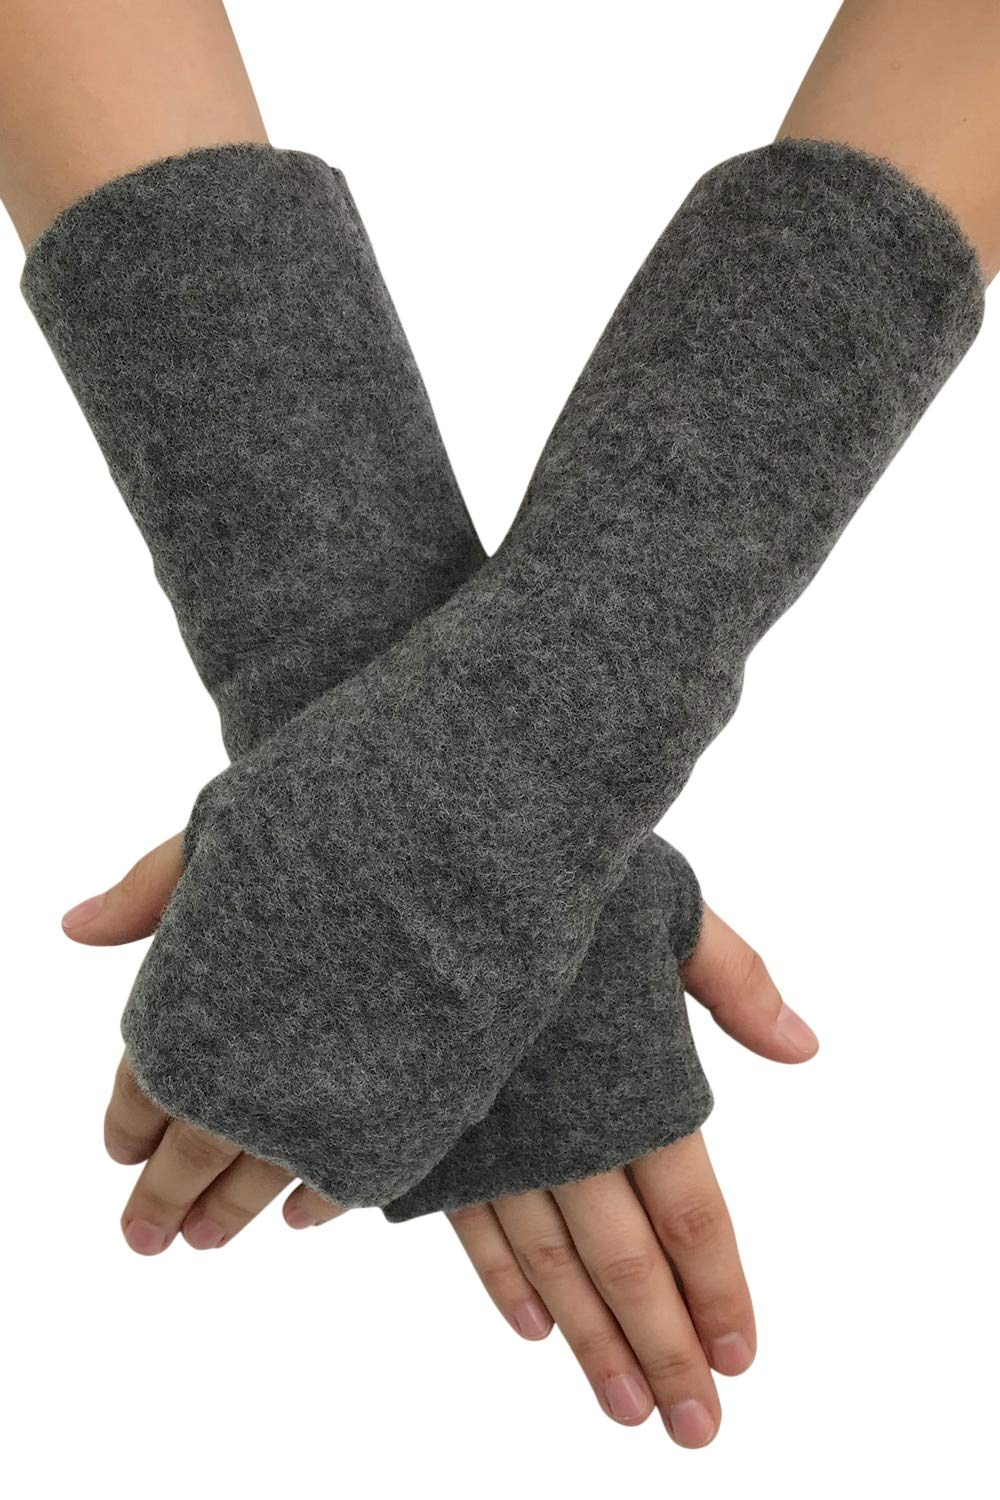 Women's Arm Warmer Sleeves - Fingerless Gloves with Thumb Holes, Pure Merino Wool Fleece (Grey Melange) by EcoAble Apparel (Image #5)